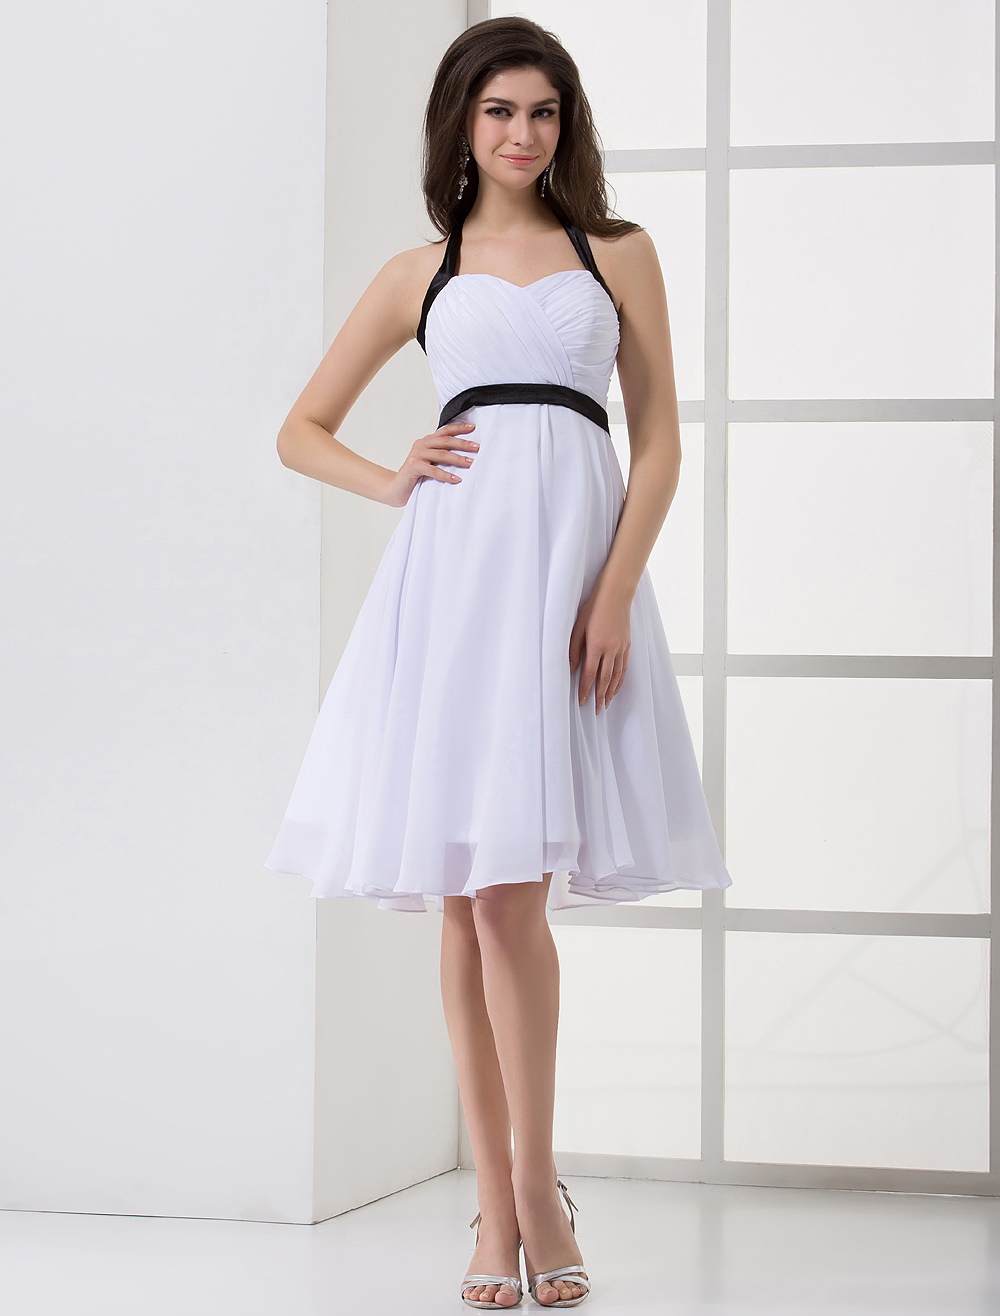 semi formal wedding dresses white sash straps backless bow satin chiffon bridesmaid 7296